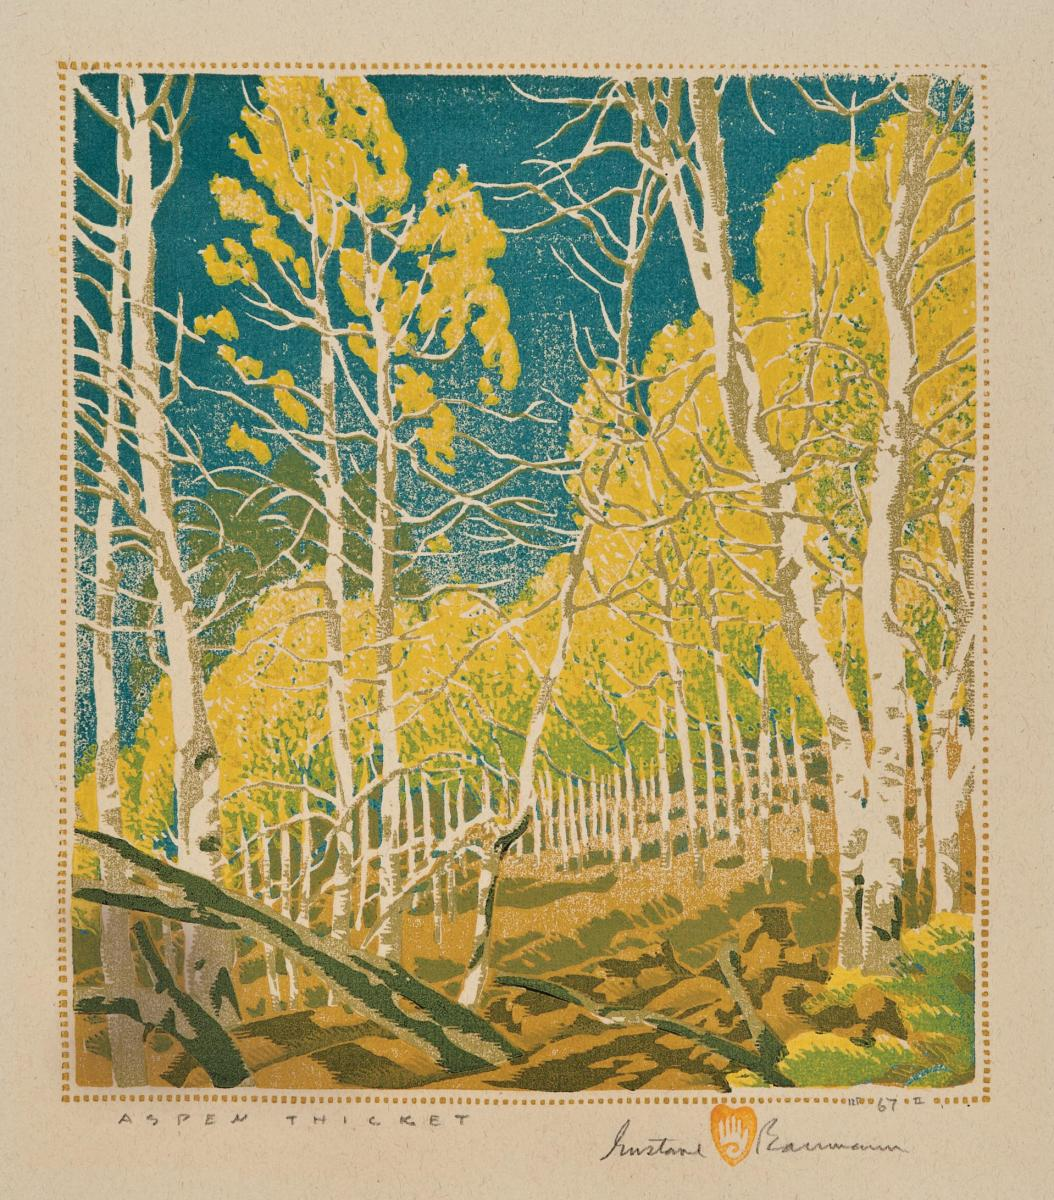 Aspen Thicket, a 1943 color woodcut by Gustave Baumann.